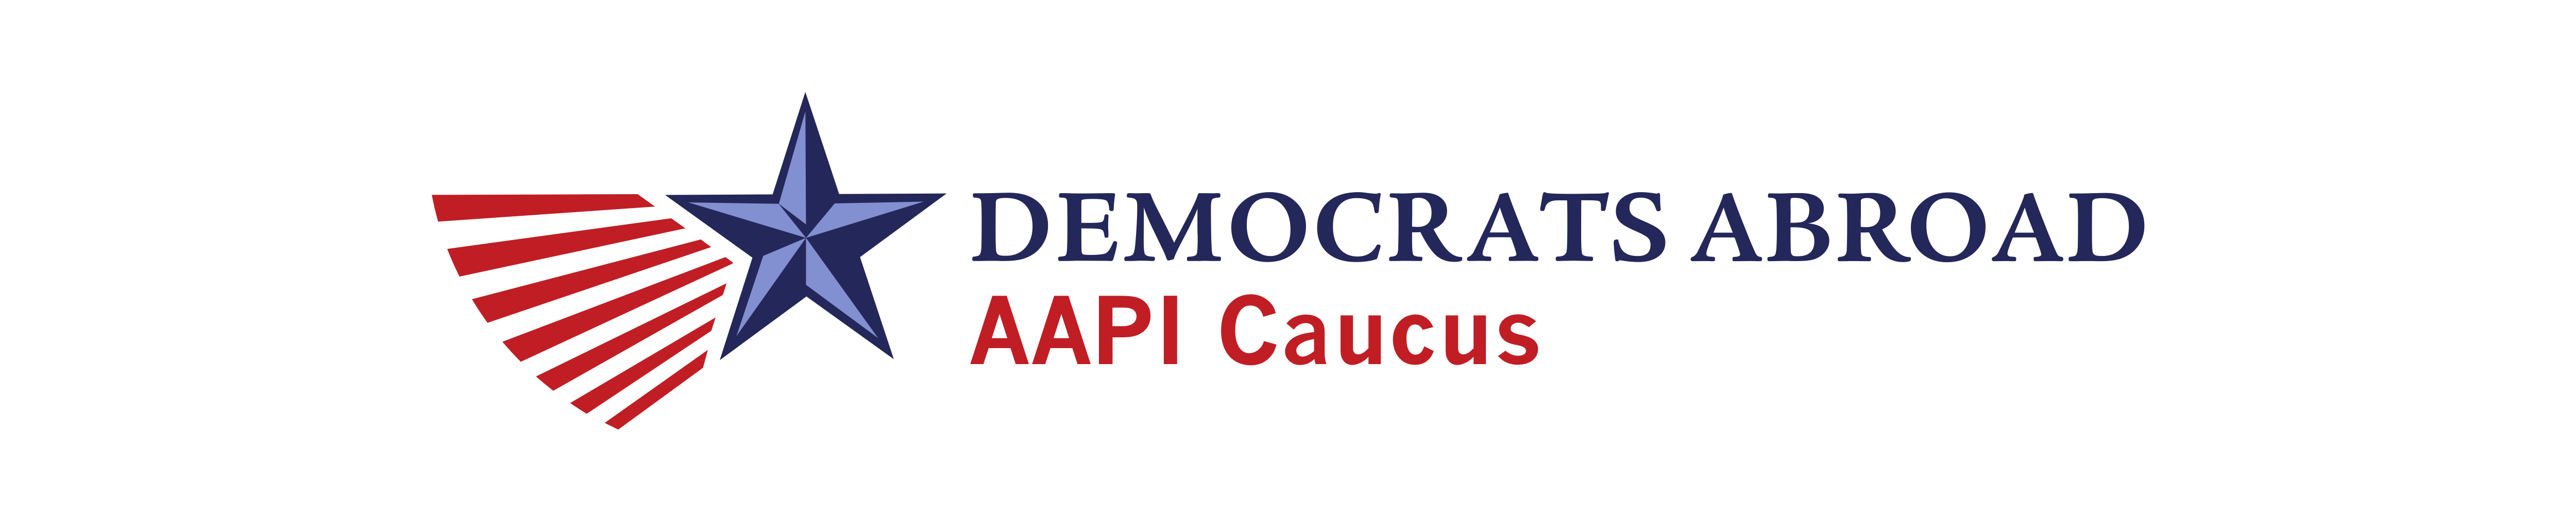 Democrats_Abroad_Logo_-_AAPI_(transparent_background__2_lines)_0.5x.png